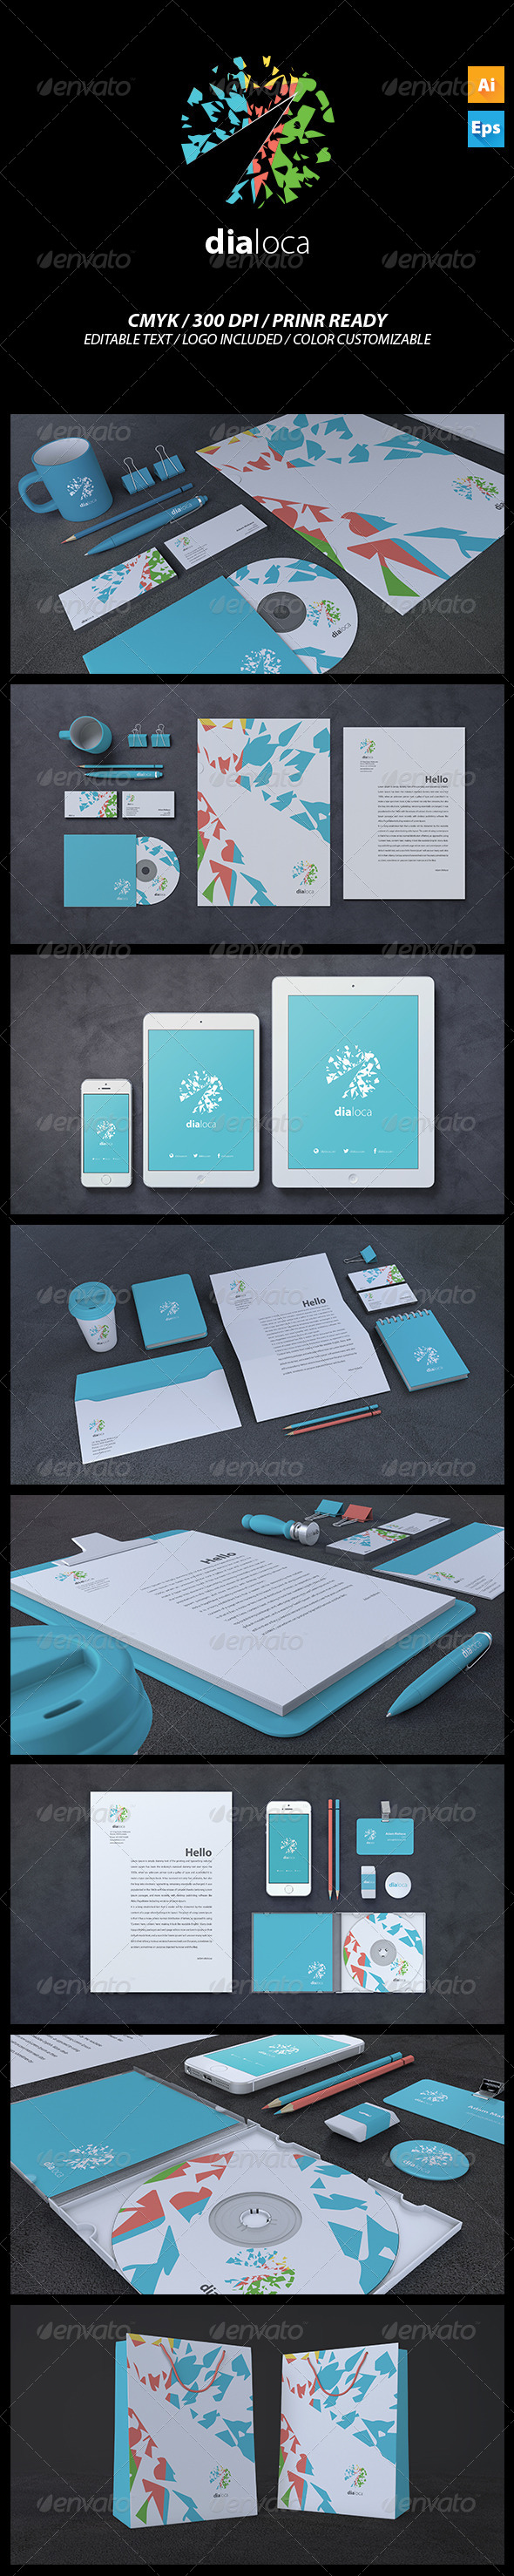 DiaLoca Corporate Identity - Stationery Print Templates